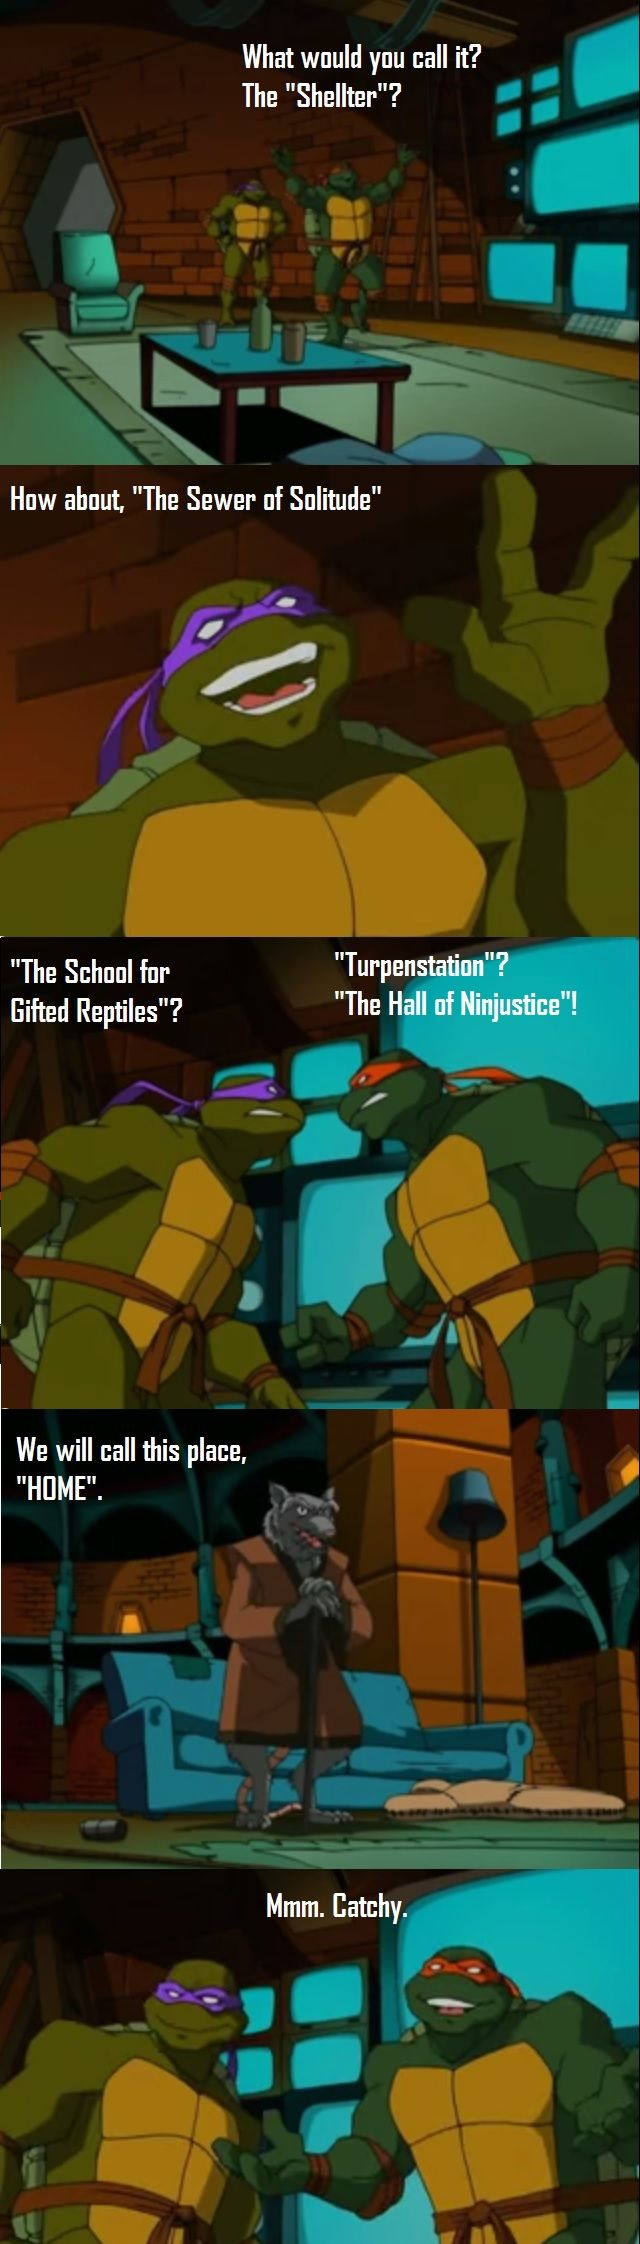 Ninja Turtle Quotes Delectable 201 Best Teenage Mutant Ninja Turtles Images On Pinterest  Teenage . Decorating Inspiration